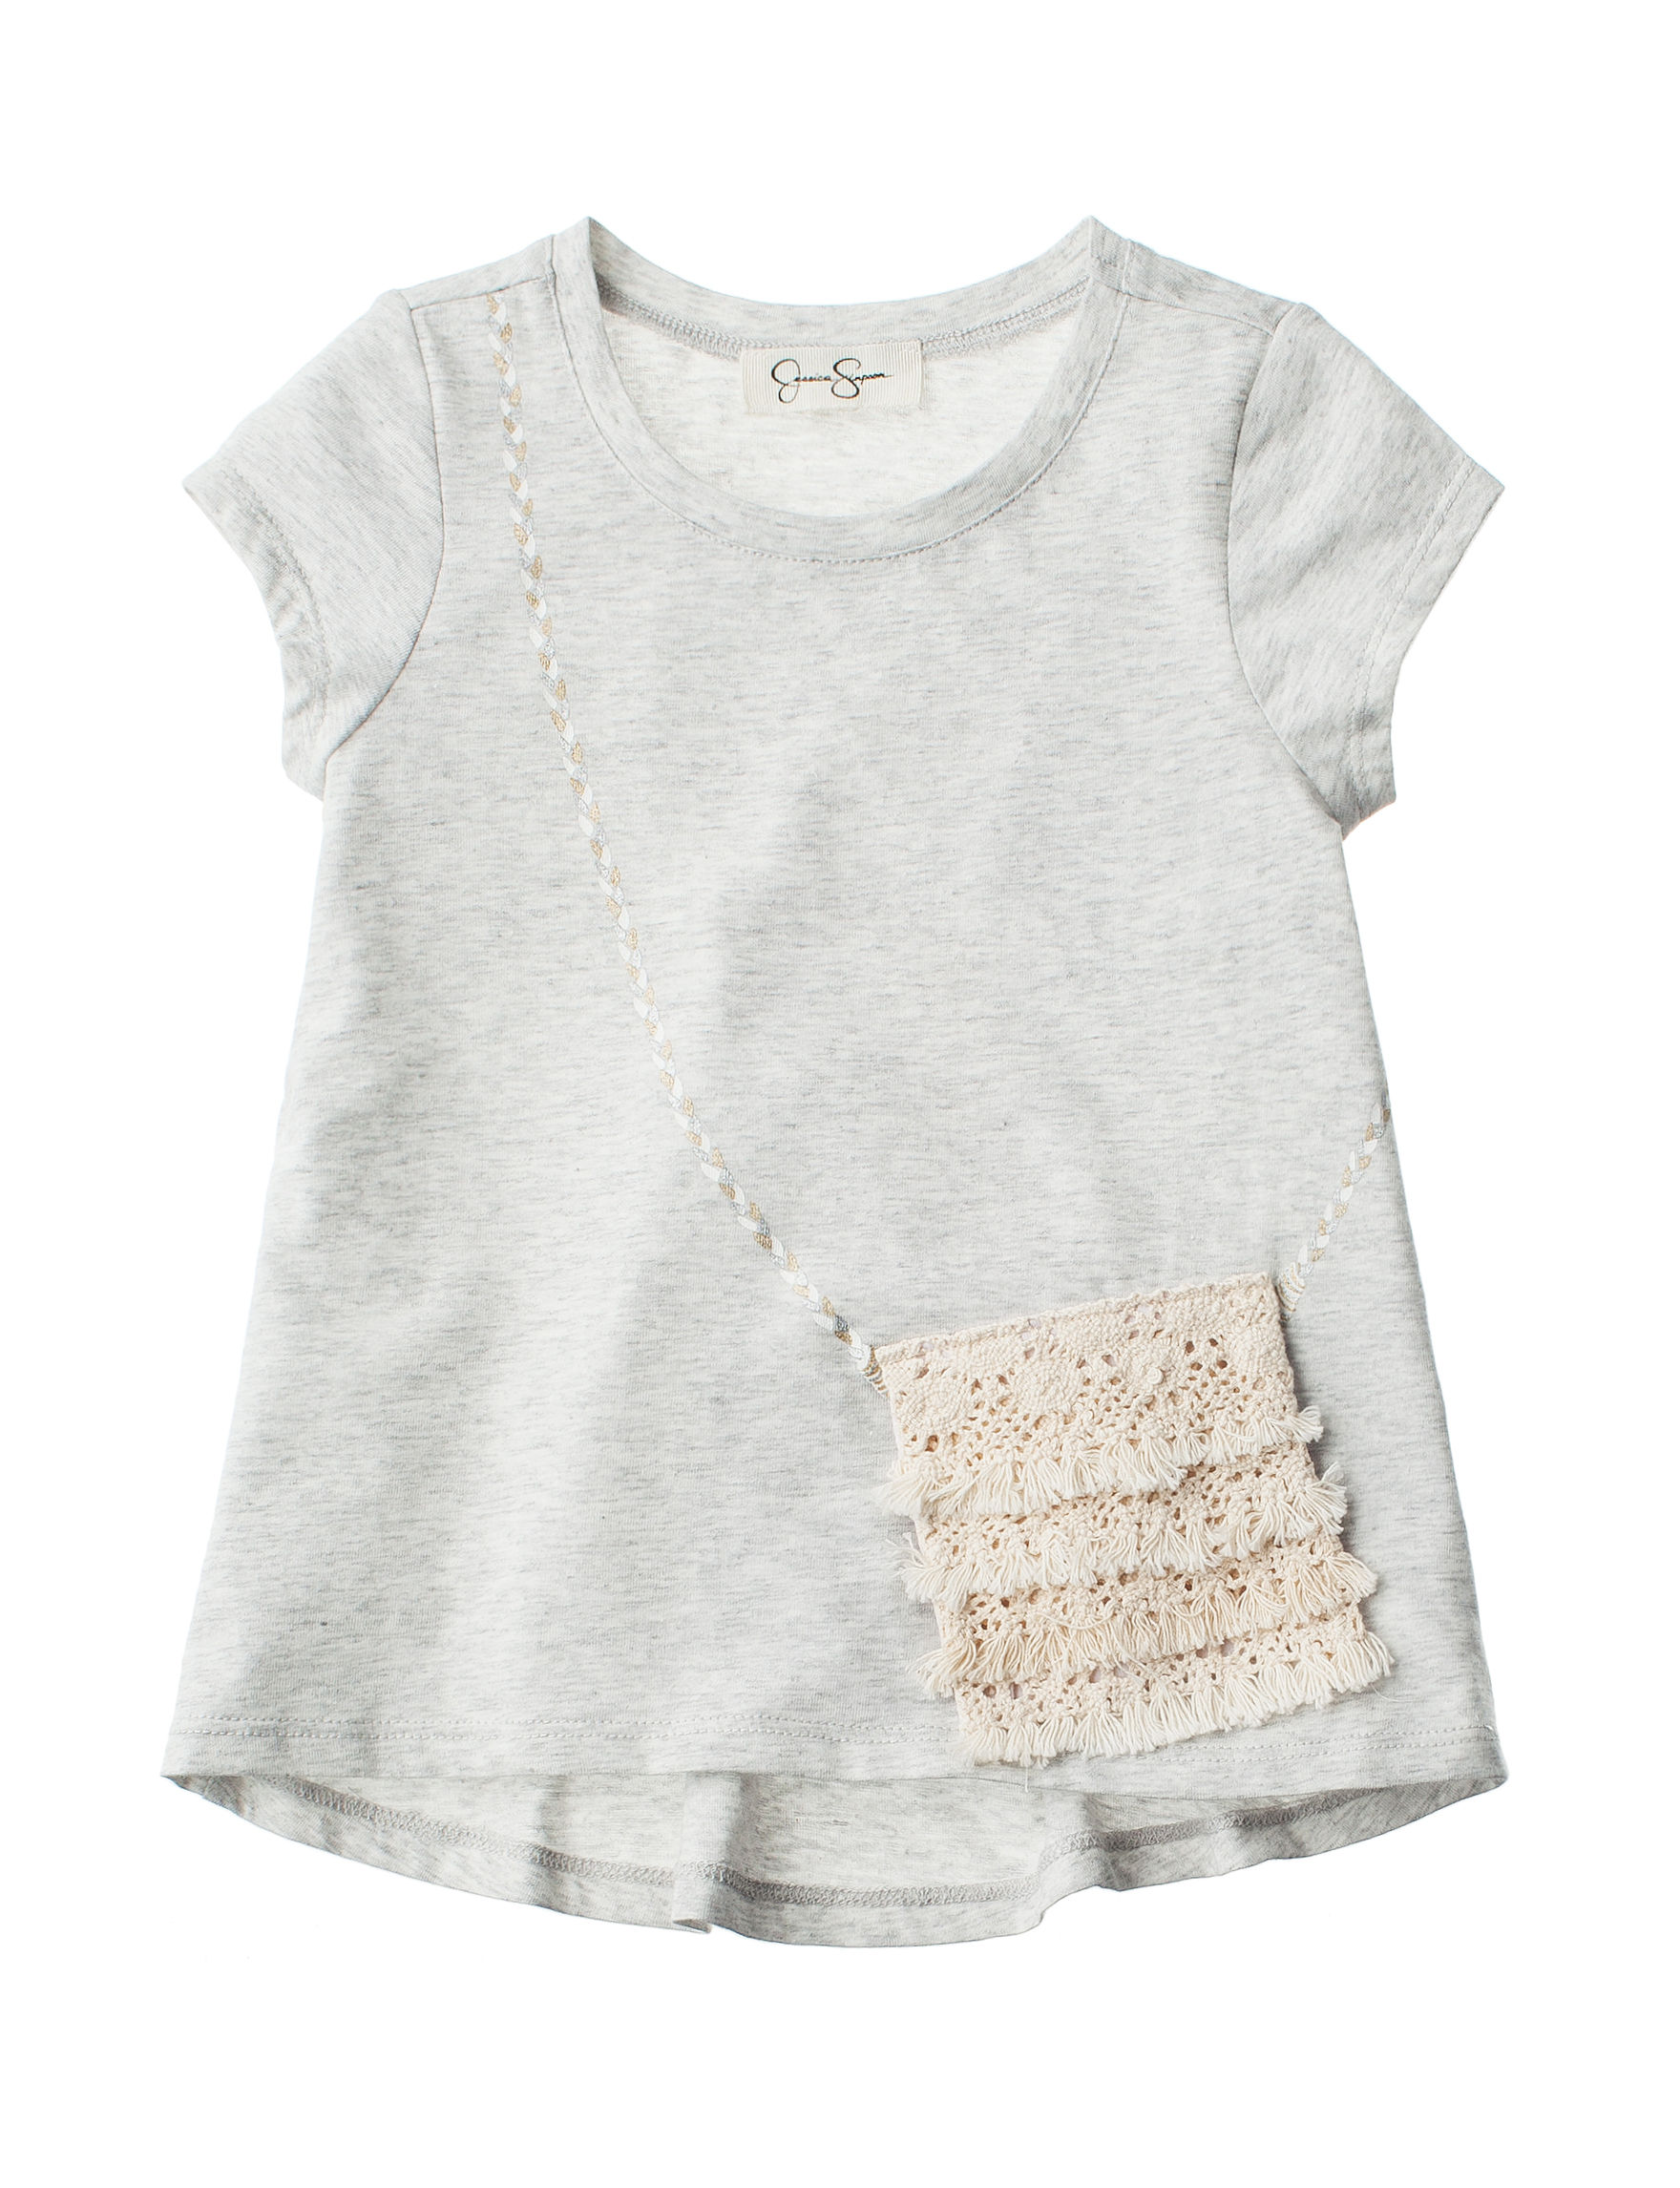 Jessica Simpson Light Heather Grey